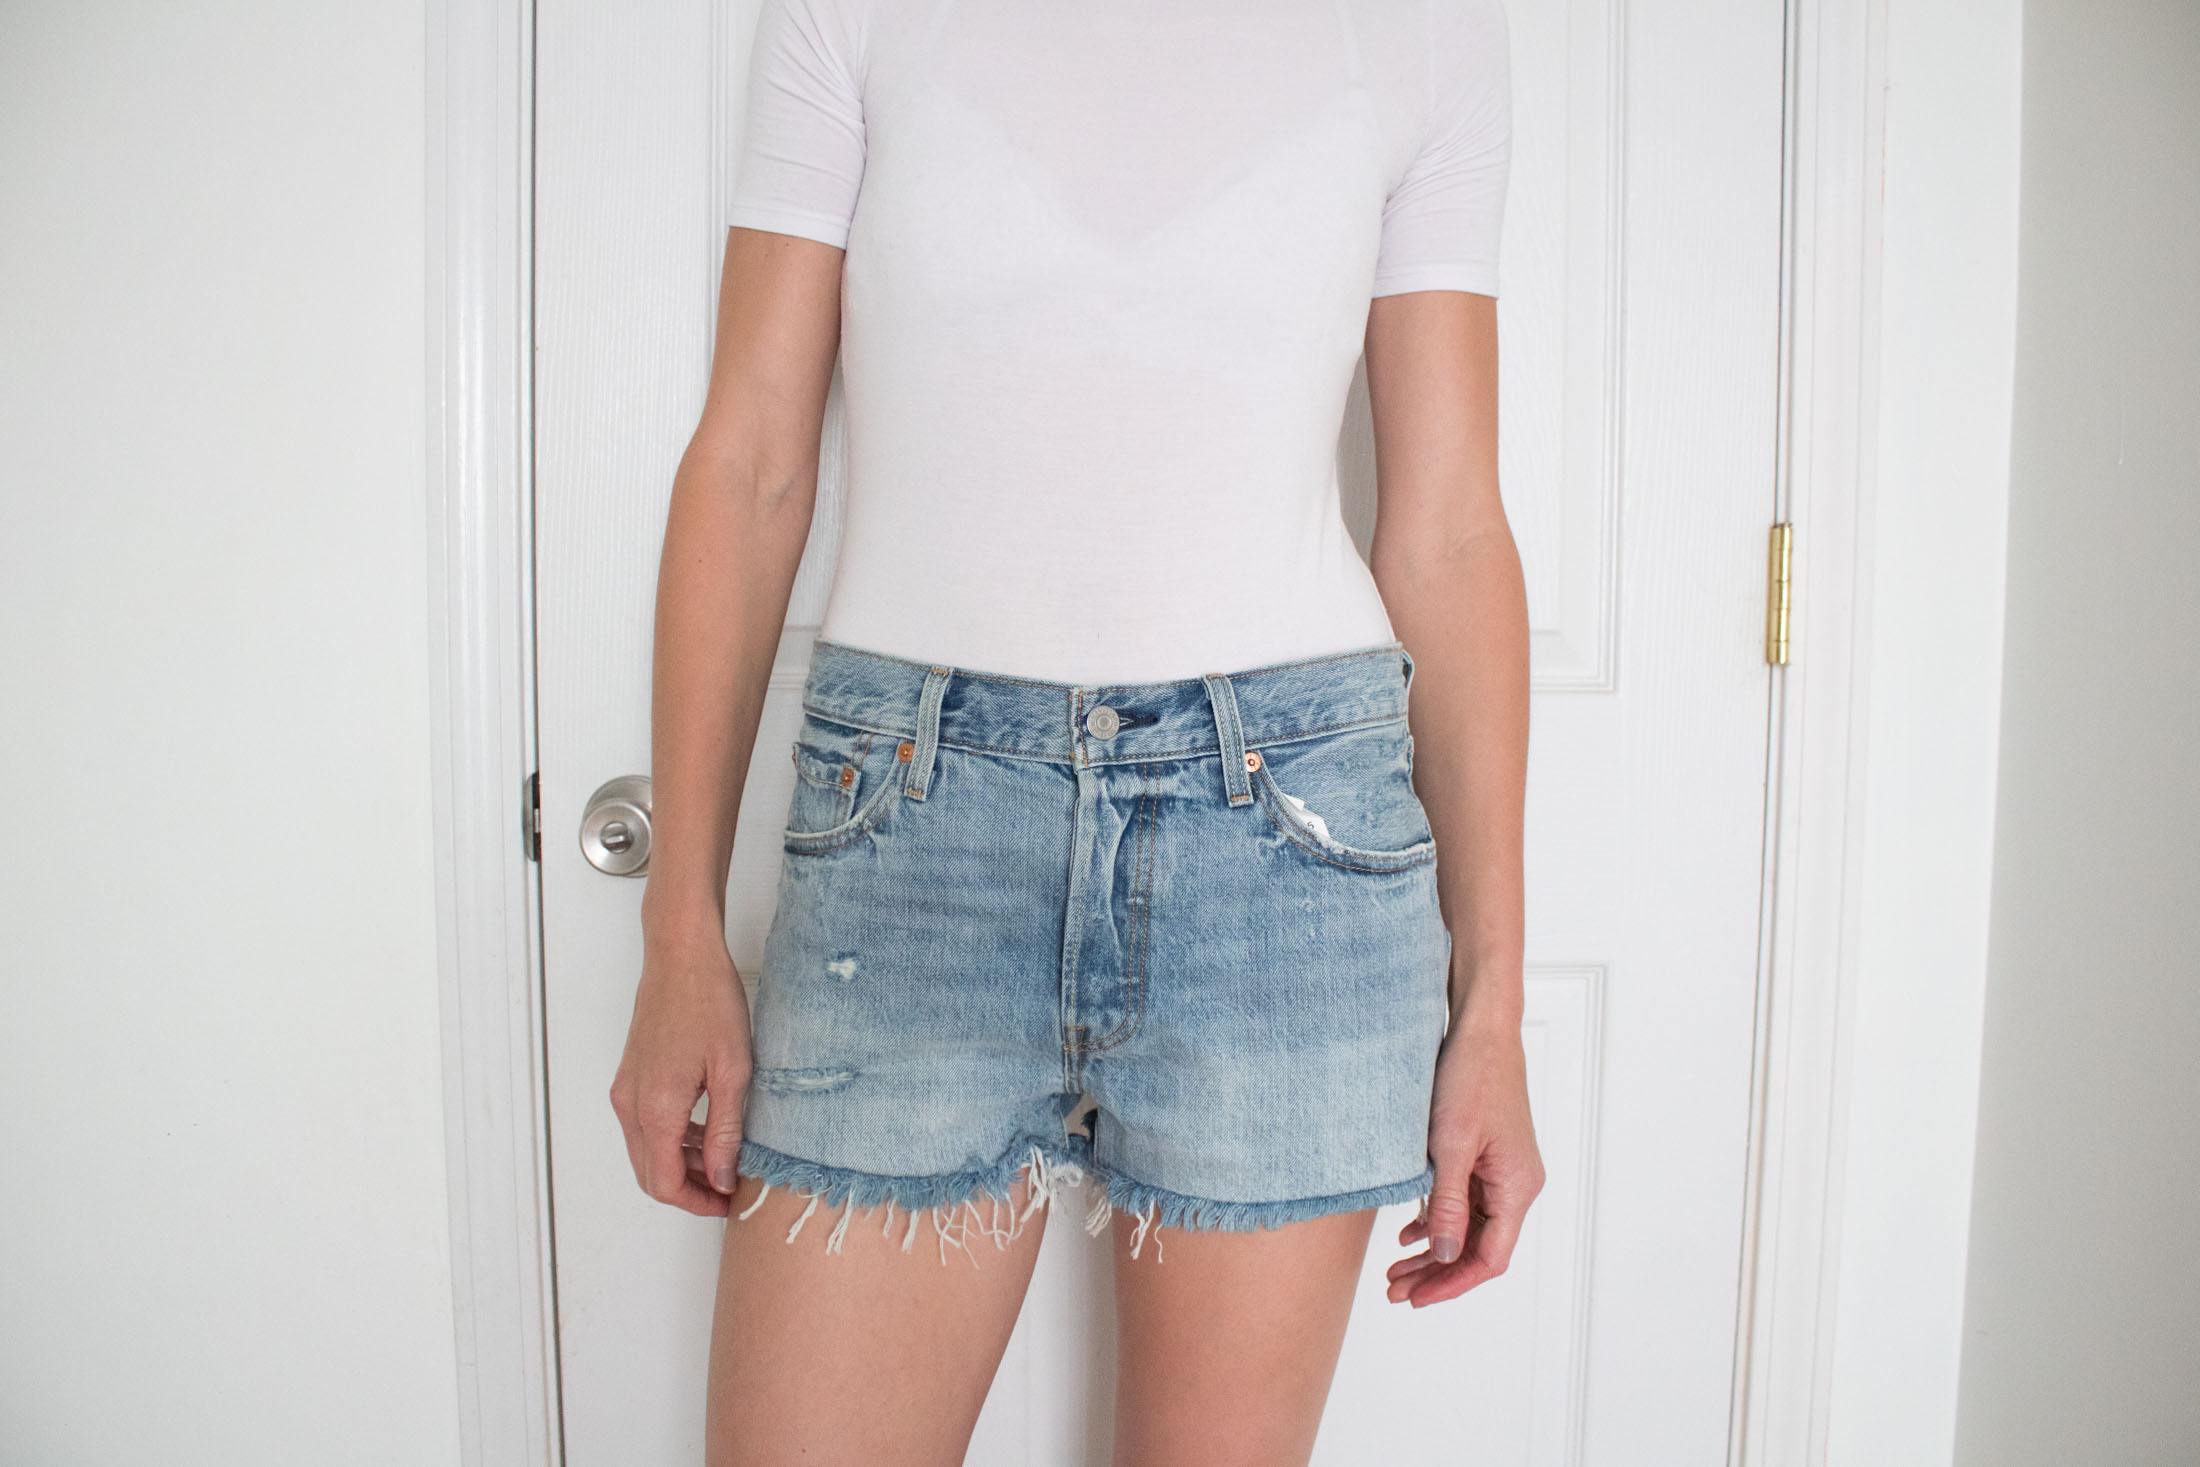 levis-501-cutoff-denim-shorts-waveline